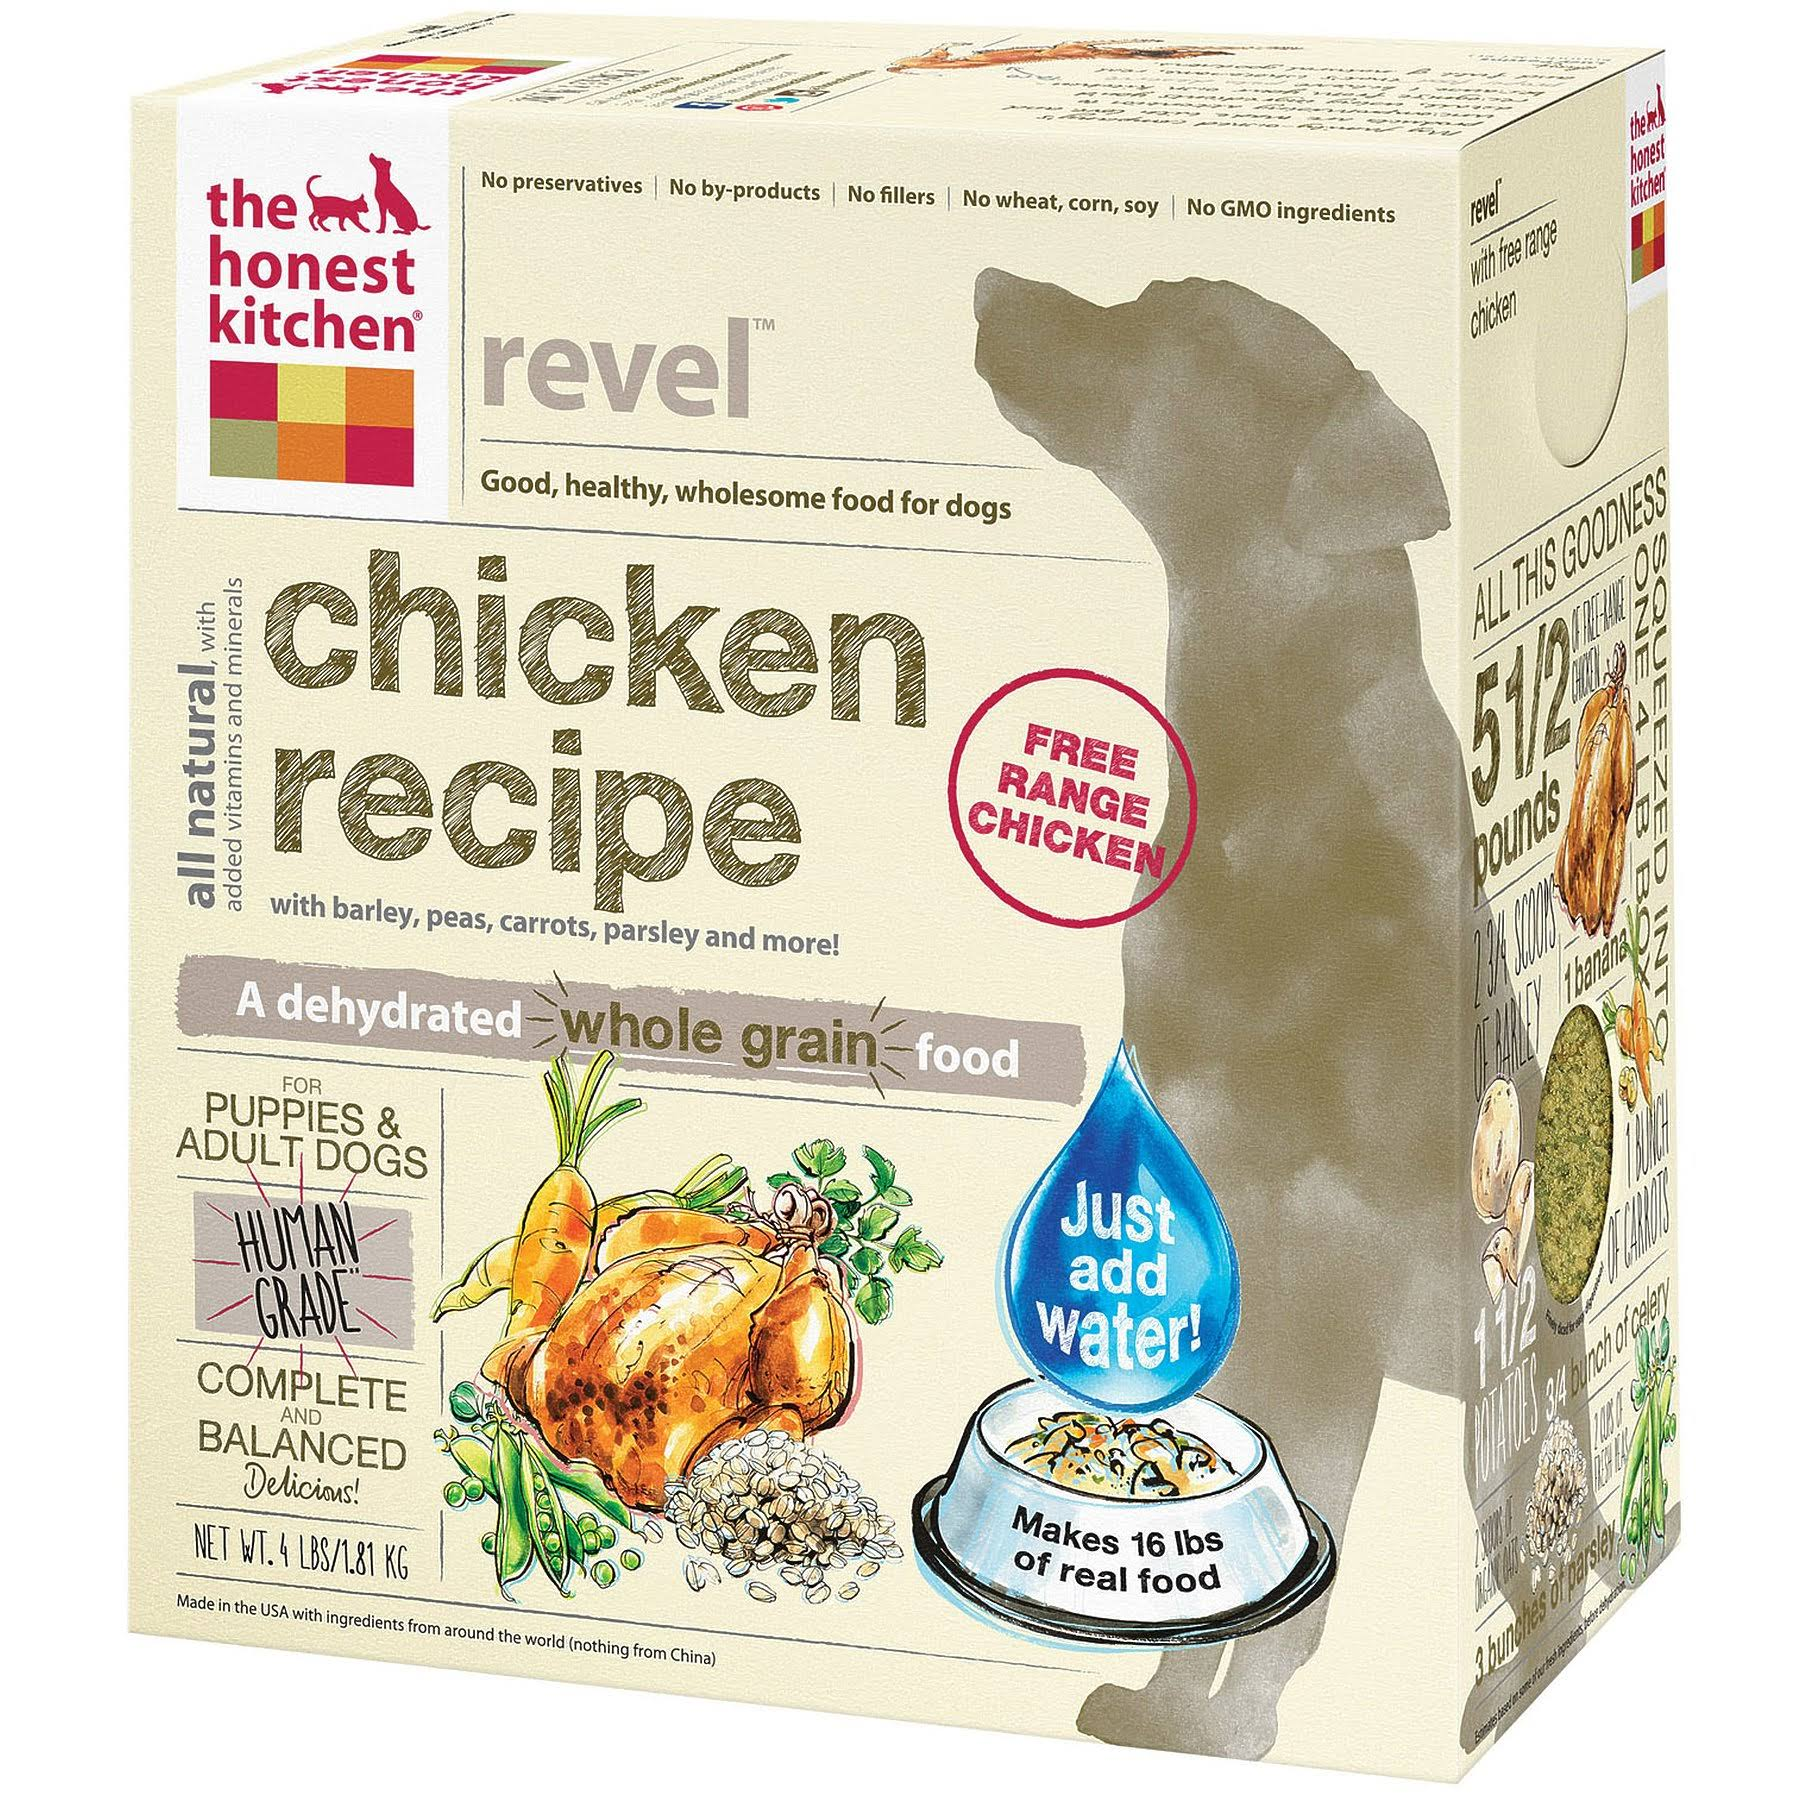 The Honest Kitchen Revel Dehydrated Dog Food - 4lb, Chicken